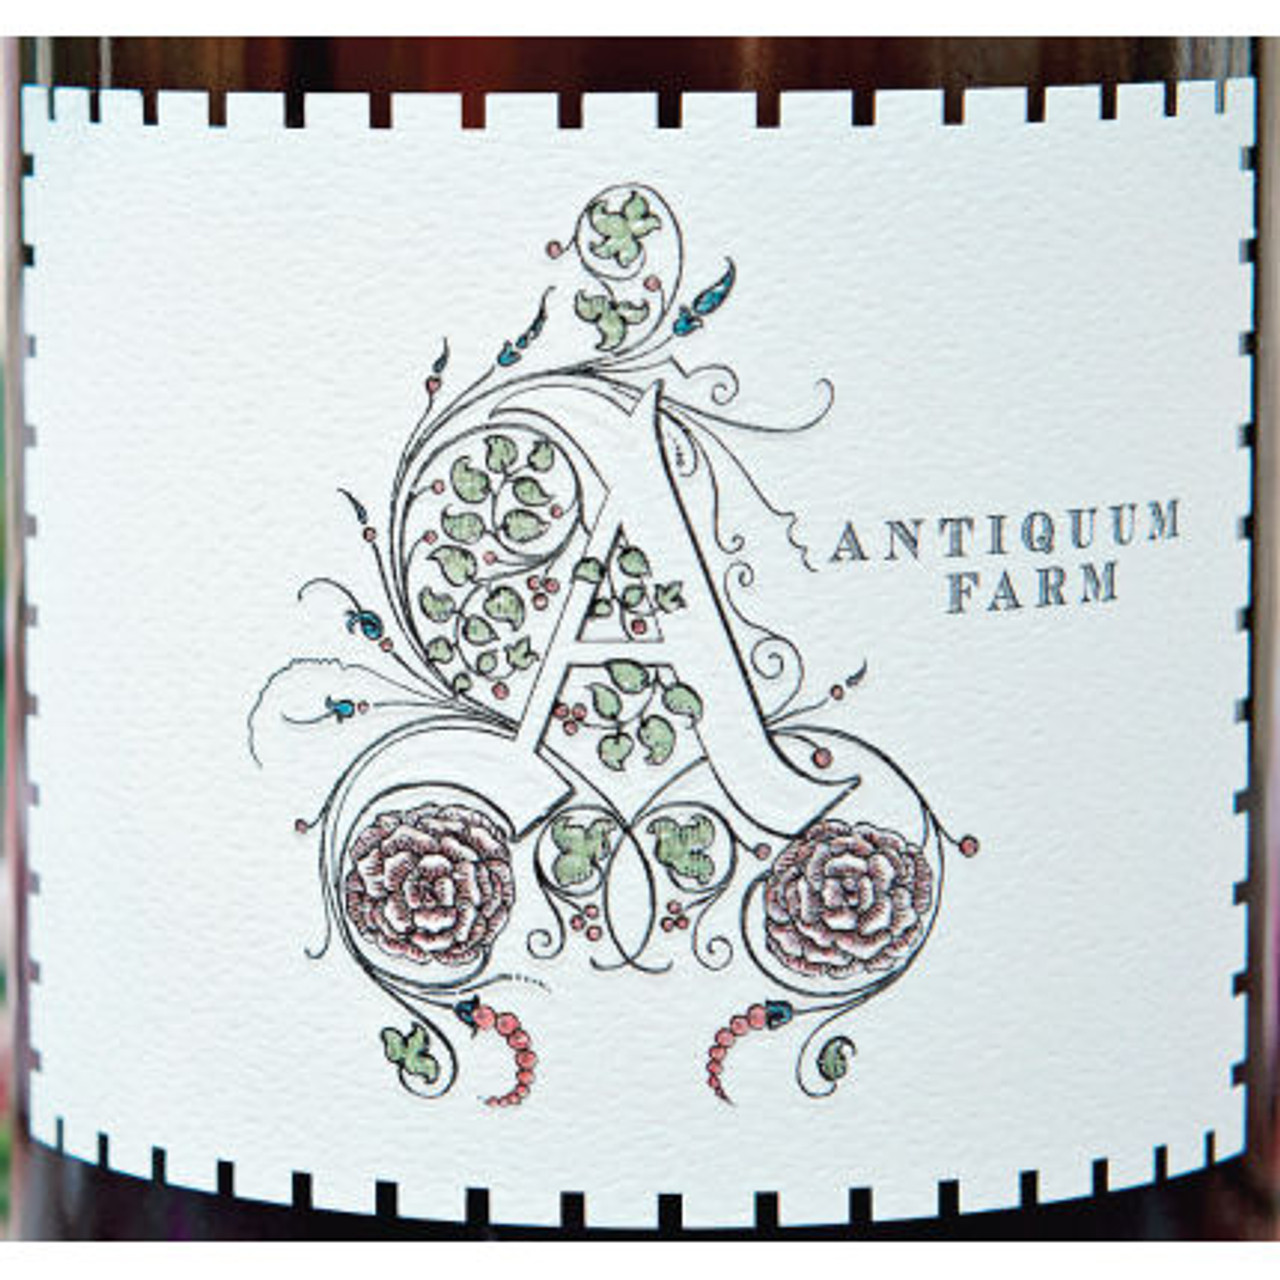 Antiquum Farm Aurosa Willamette Pinot Gris Oregon